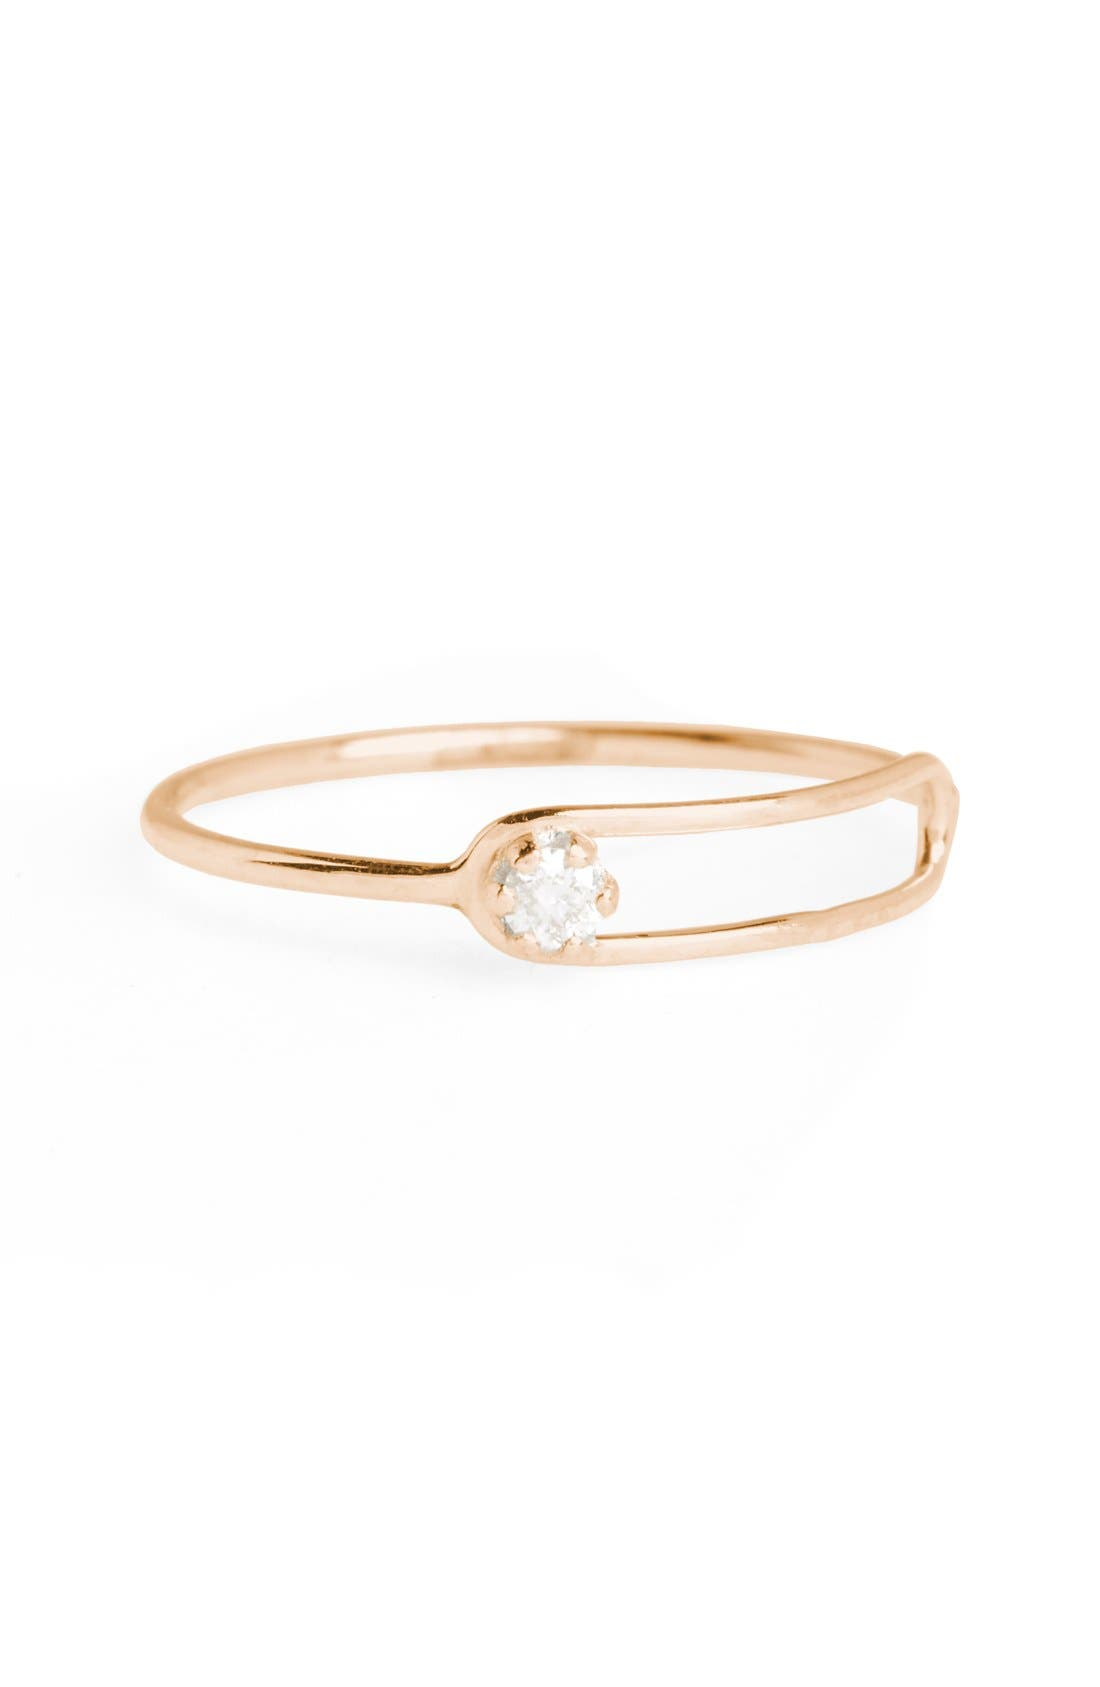 SARAH & SEBASTIAN Nimbus Diamond Oblong Ring